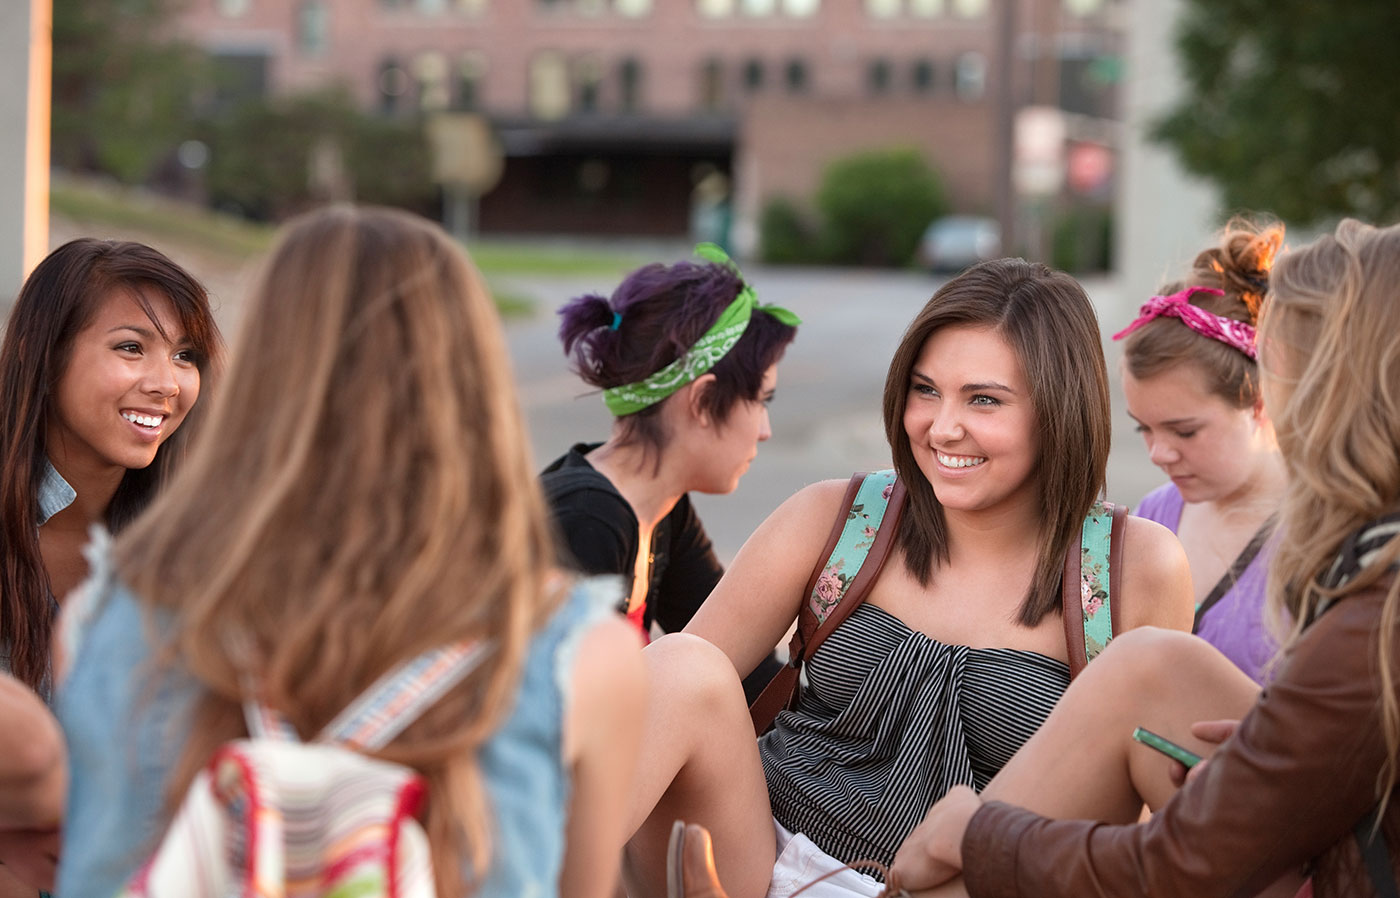 A group of female students hanging out and laughing on campus.